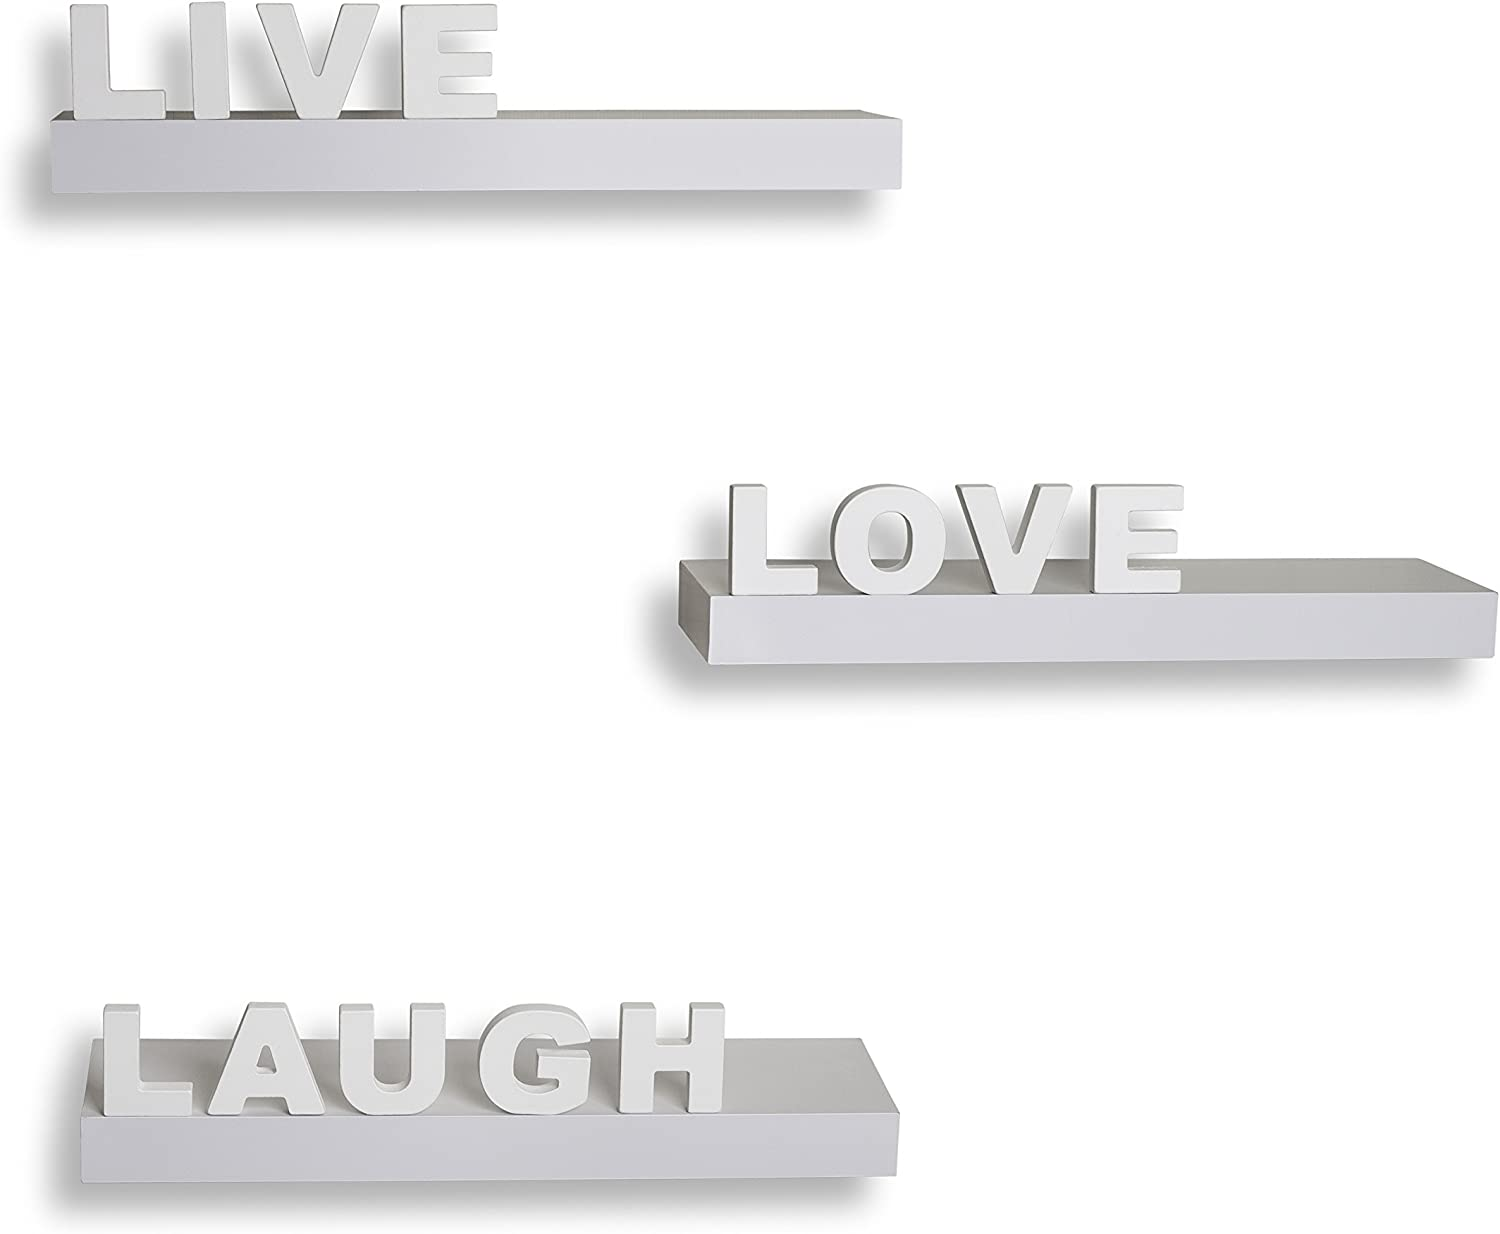 White 3 pc Accent Wall Shelf Family Live Laugh Love Quotes Display Decor Gift